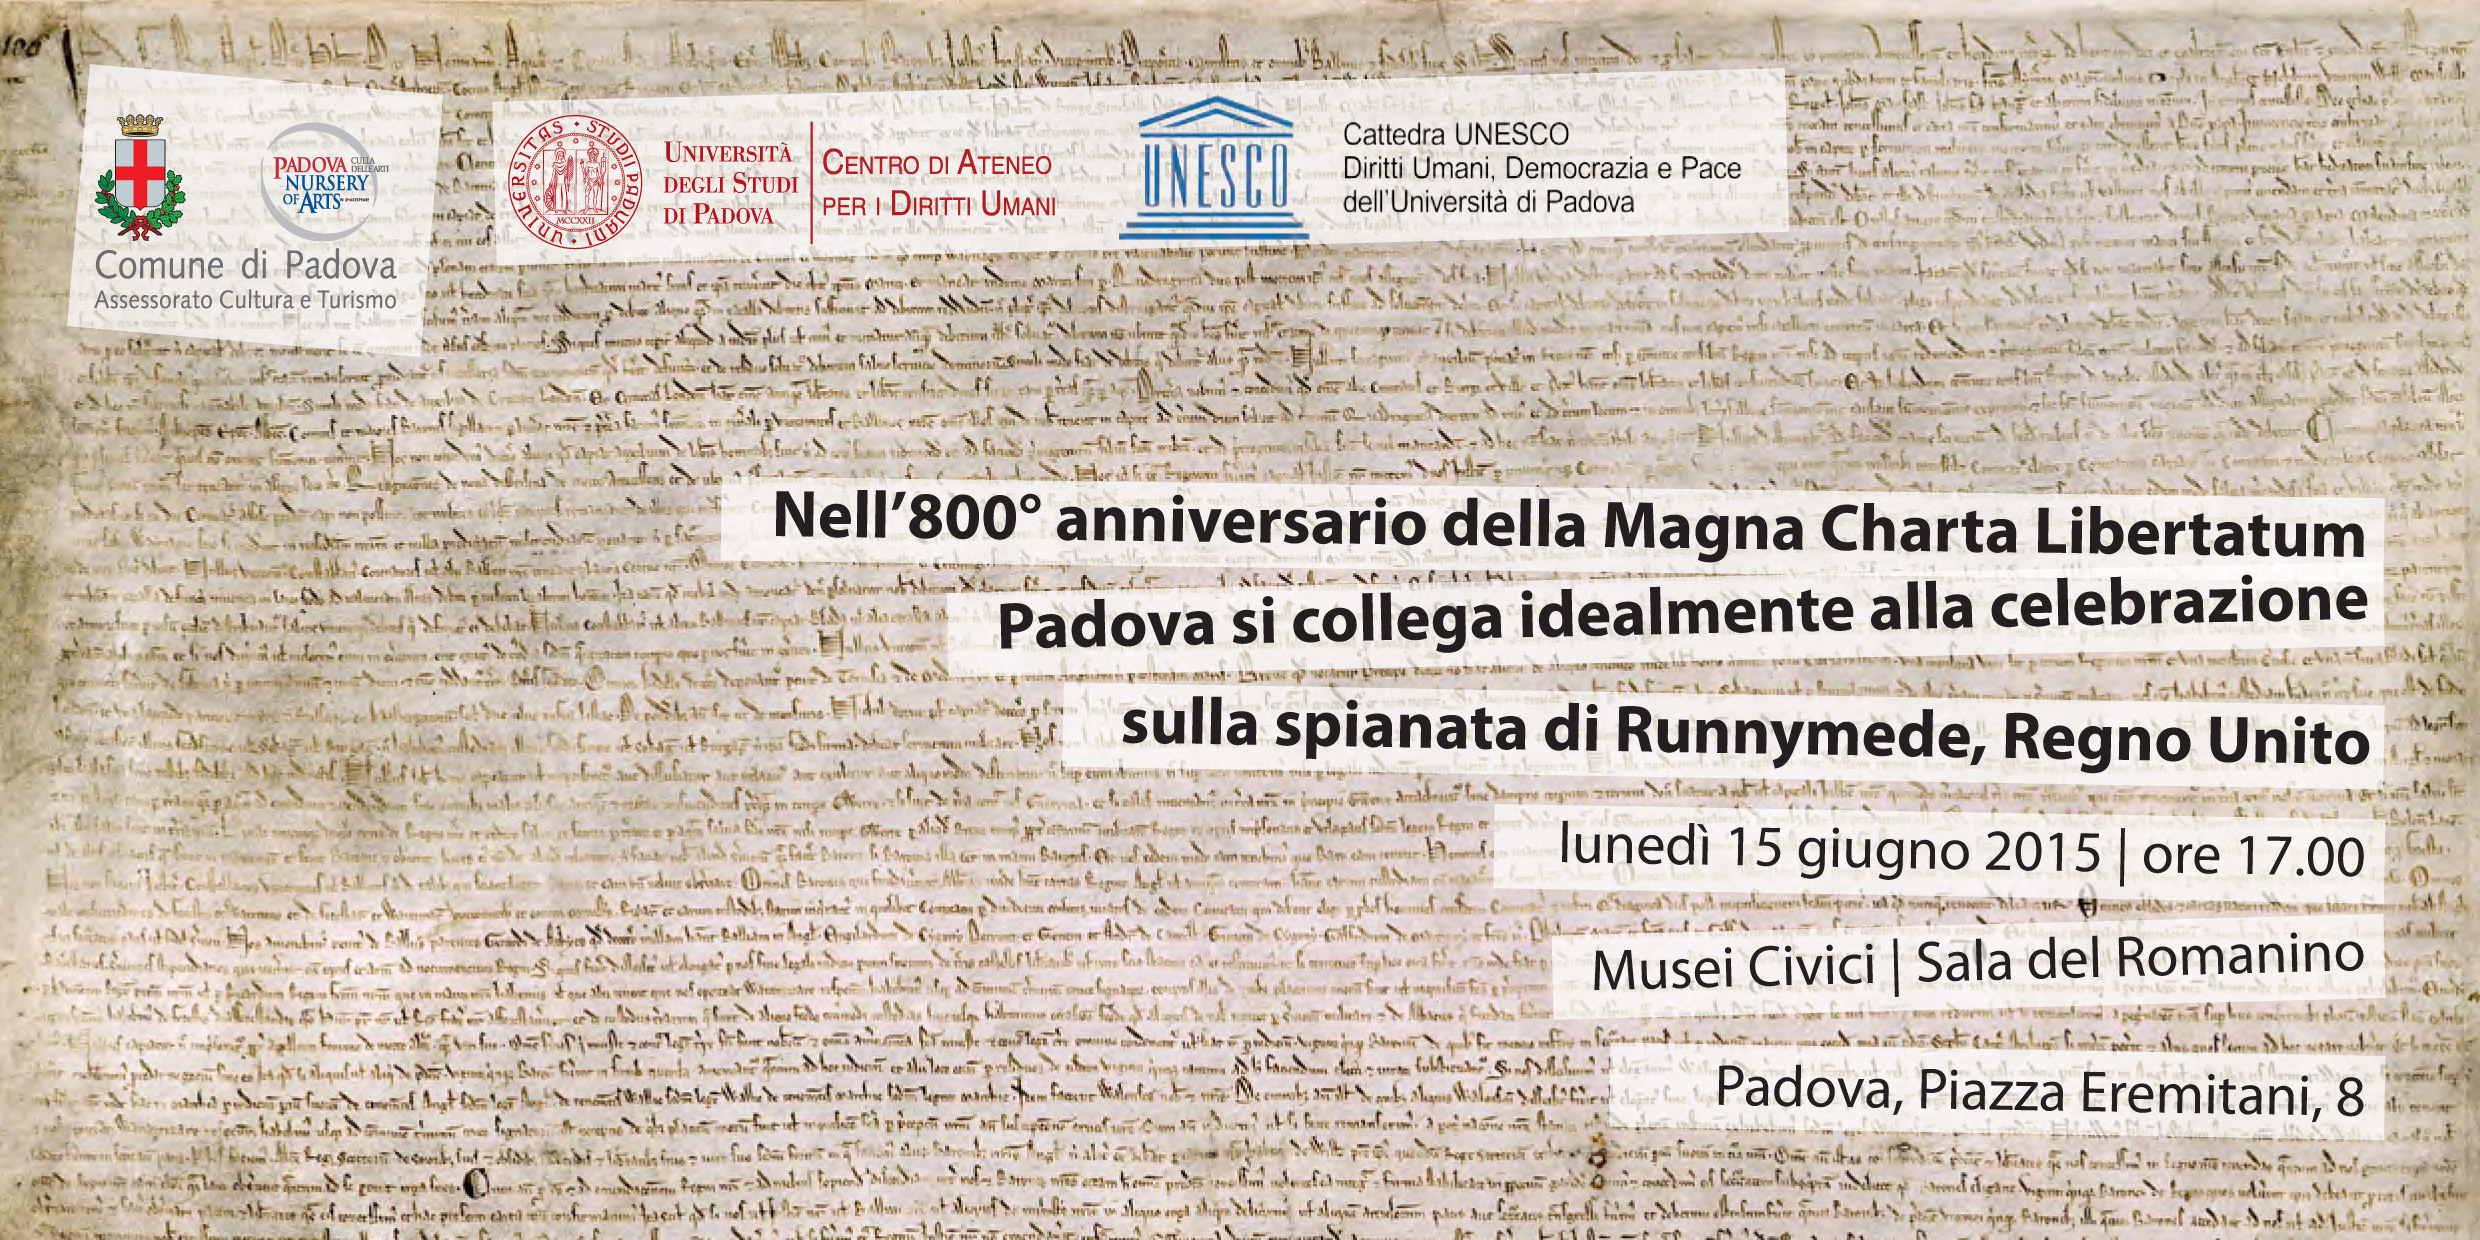 "Celebration of the ""Magna Charta Libertatum"" anniversary. In the 800th anniversary of the Magna Charta Libertatum Padua will commemorate simultaneously with the celebration at Runnymede Meadows, United Kingdom. Monday June 15th 2015, Musei Civici, Padova"